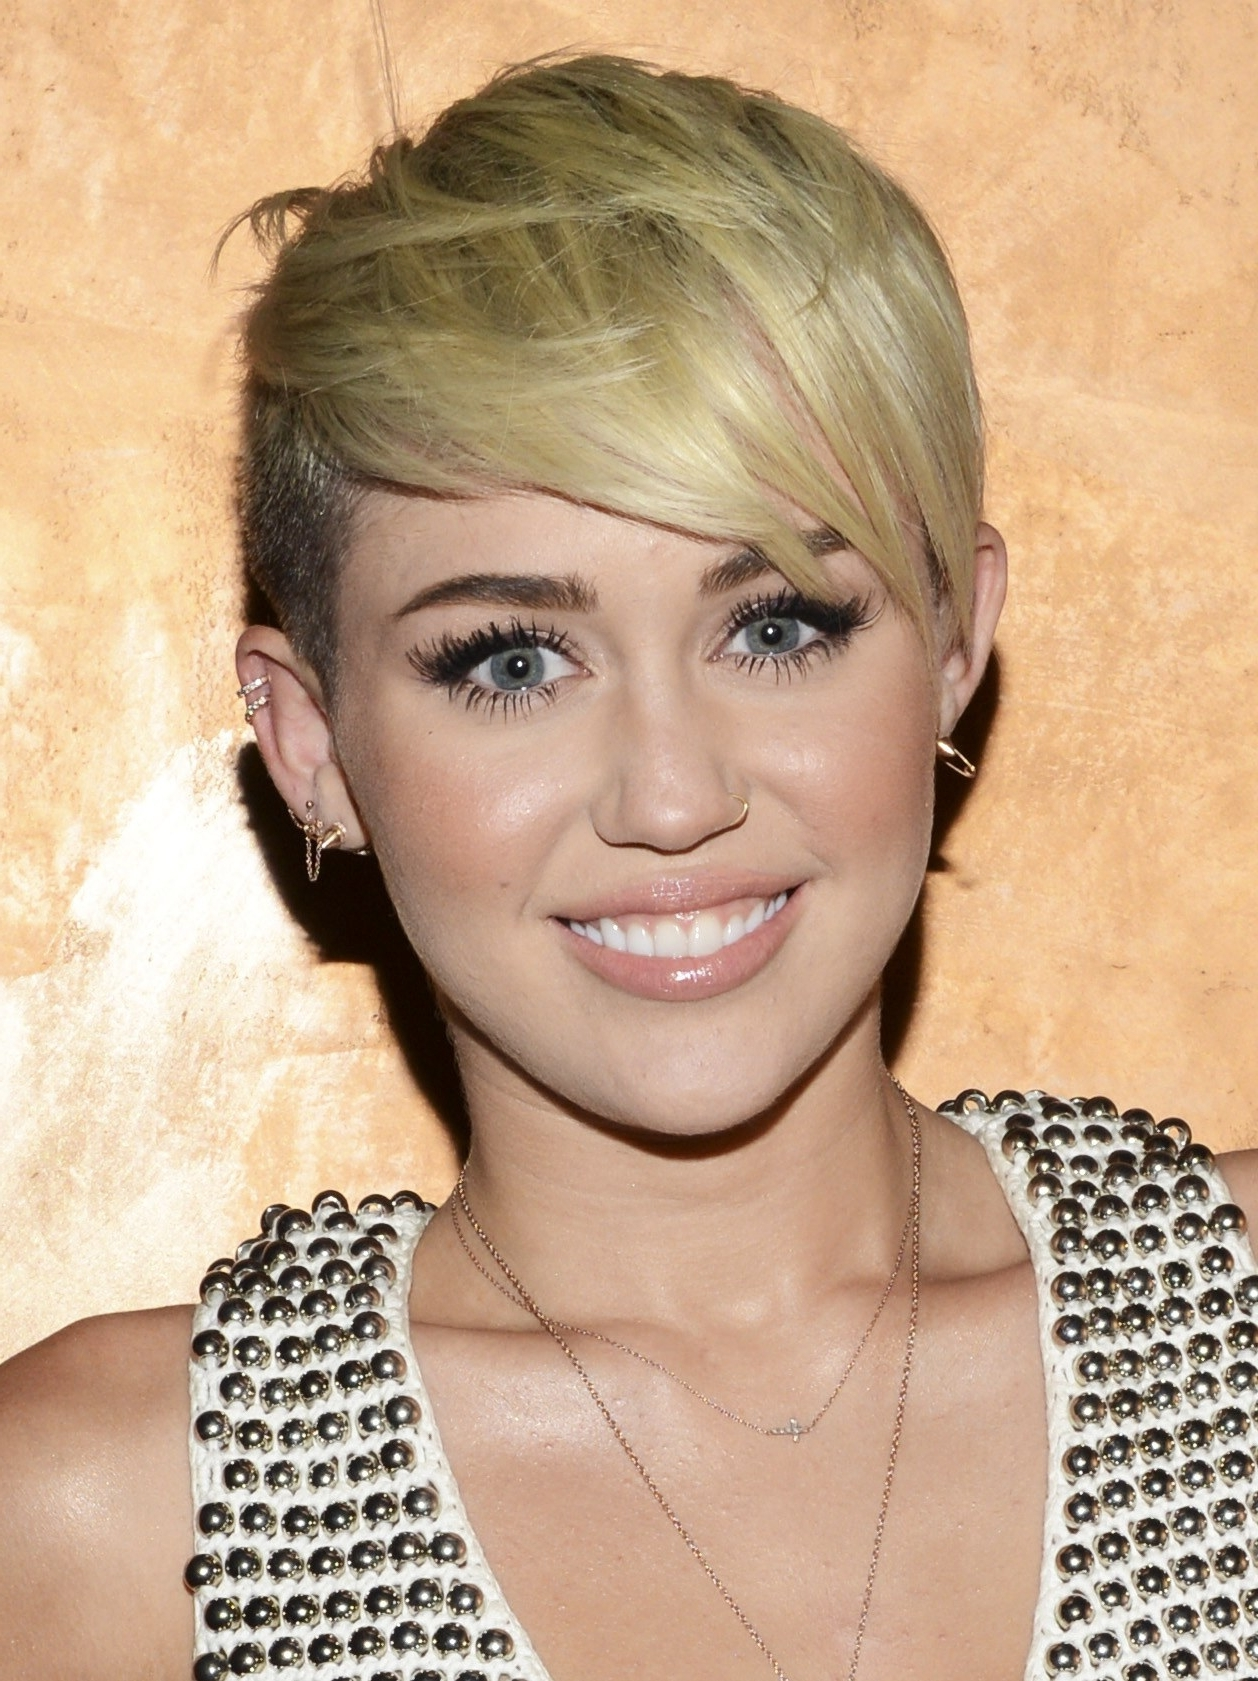 Miley Cyrus Haircut – Miley Cyrus Short Hair | Teen Vogue For Most Current Miley Cyrus Pixie Hairstyles (View 6 of 15)